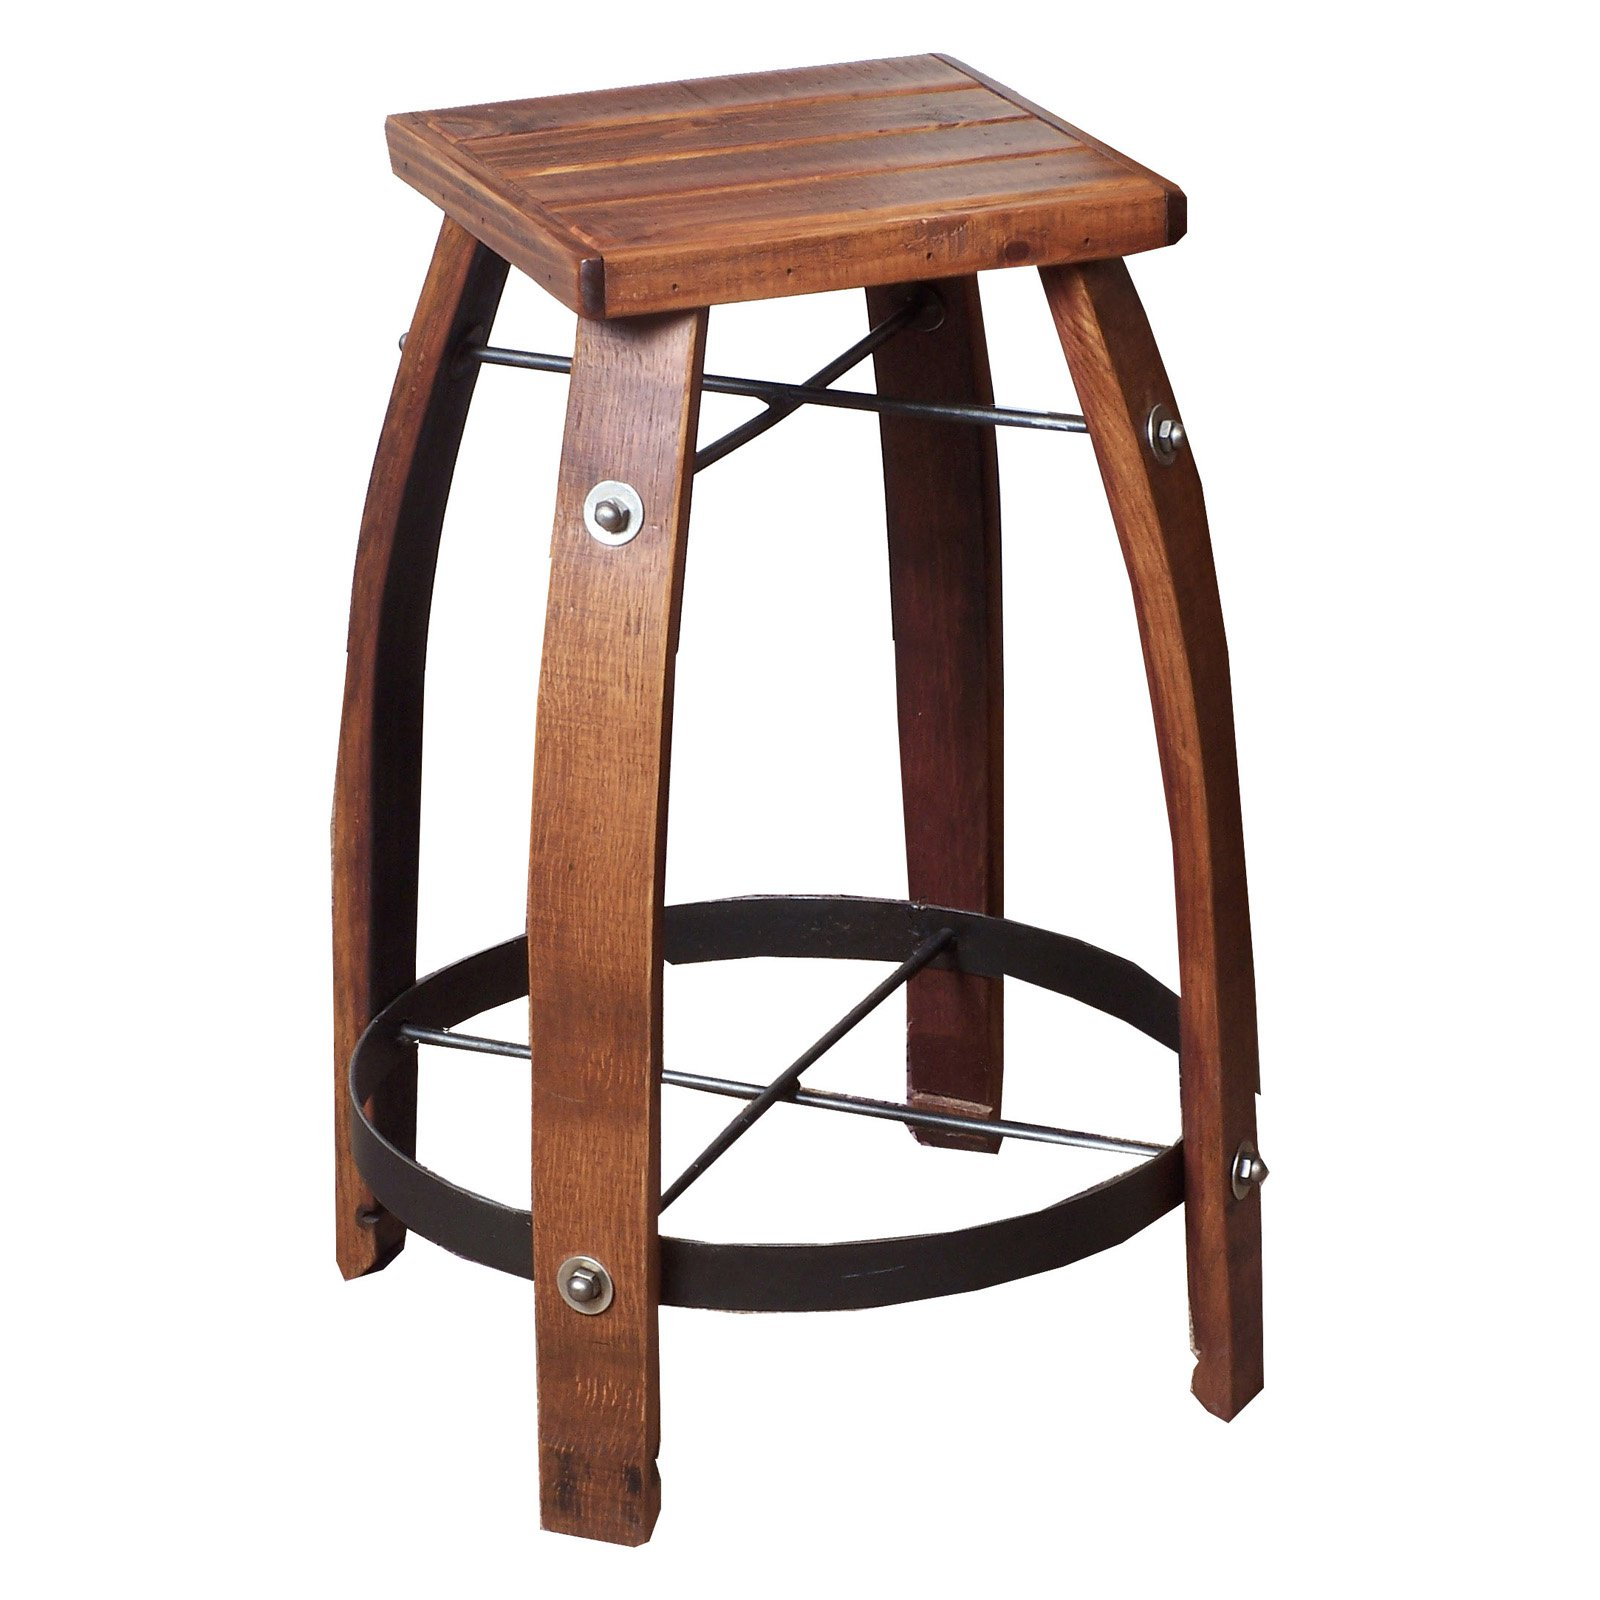 2 Day Designs Reclaimed 30 in. Stave Bar Stool